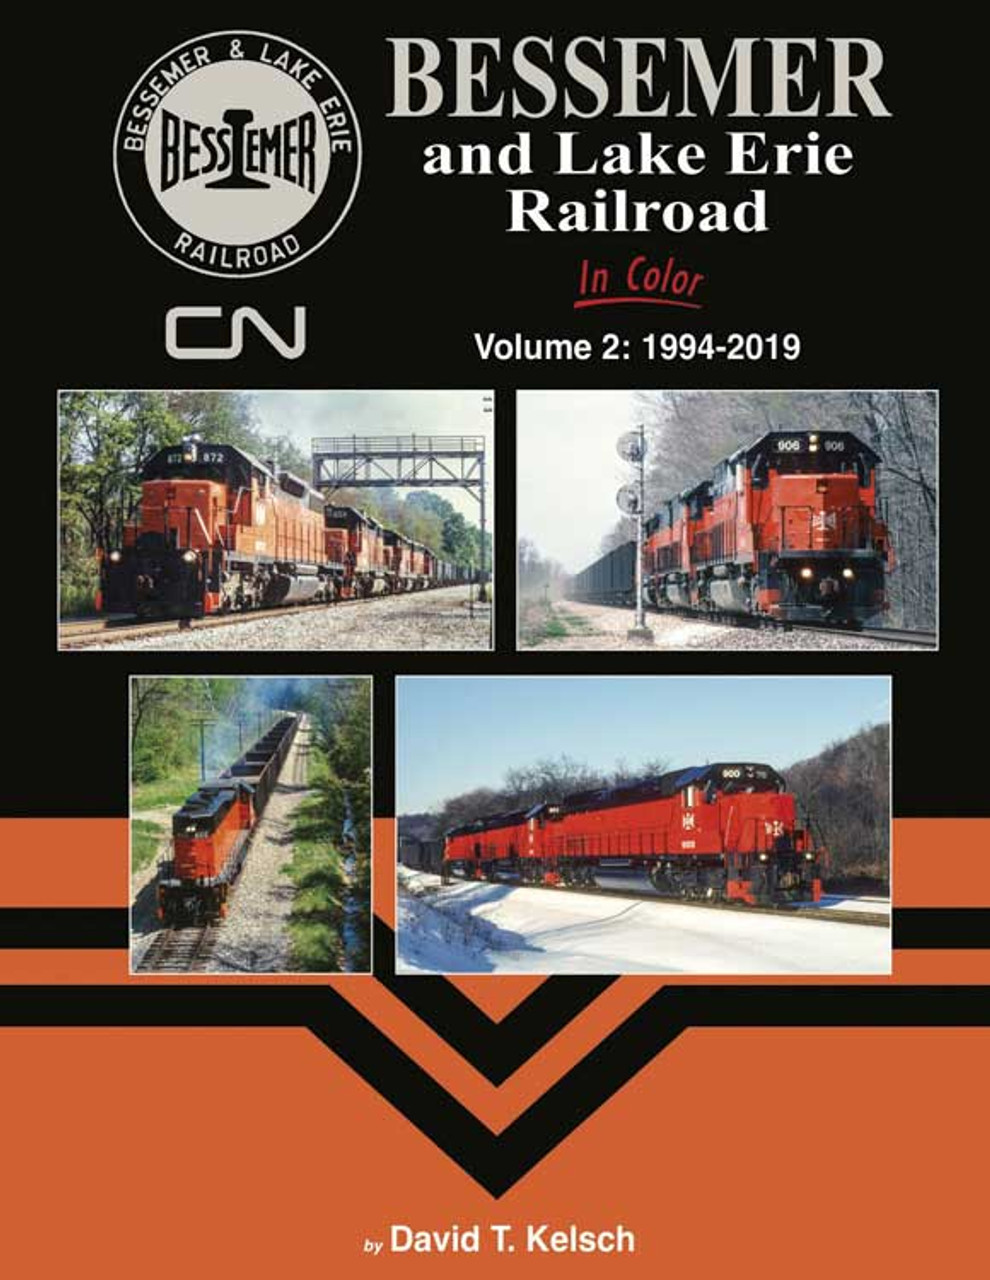 Bessemer and Lake Erie Railroad in Color -- Volume 2: 1994-2019 Hardcover, 128 Pages